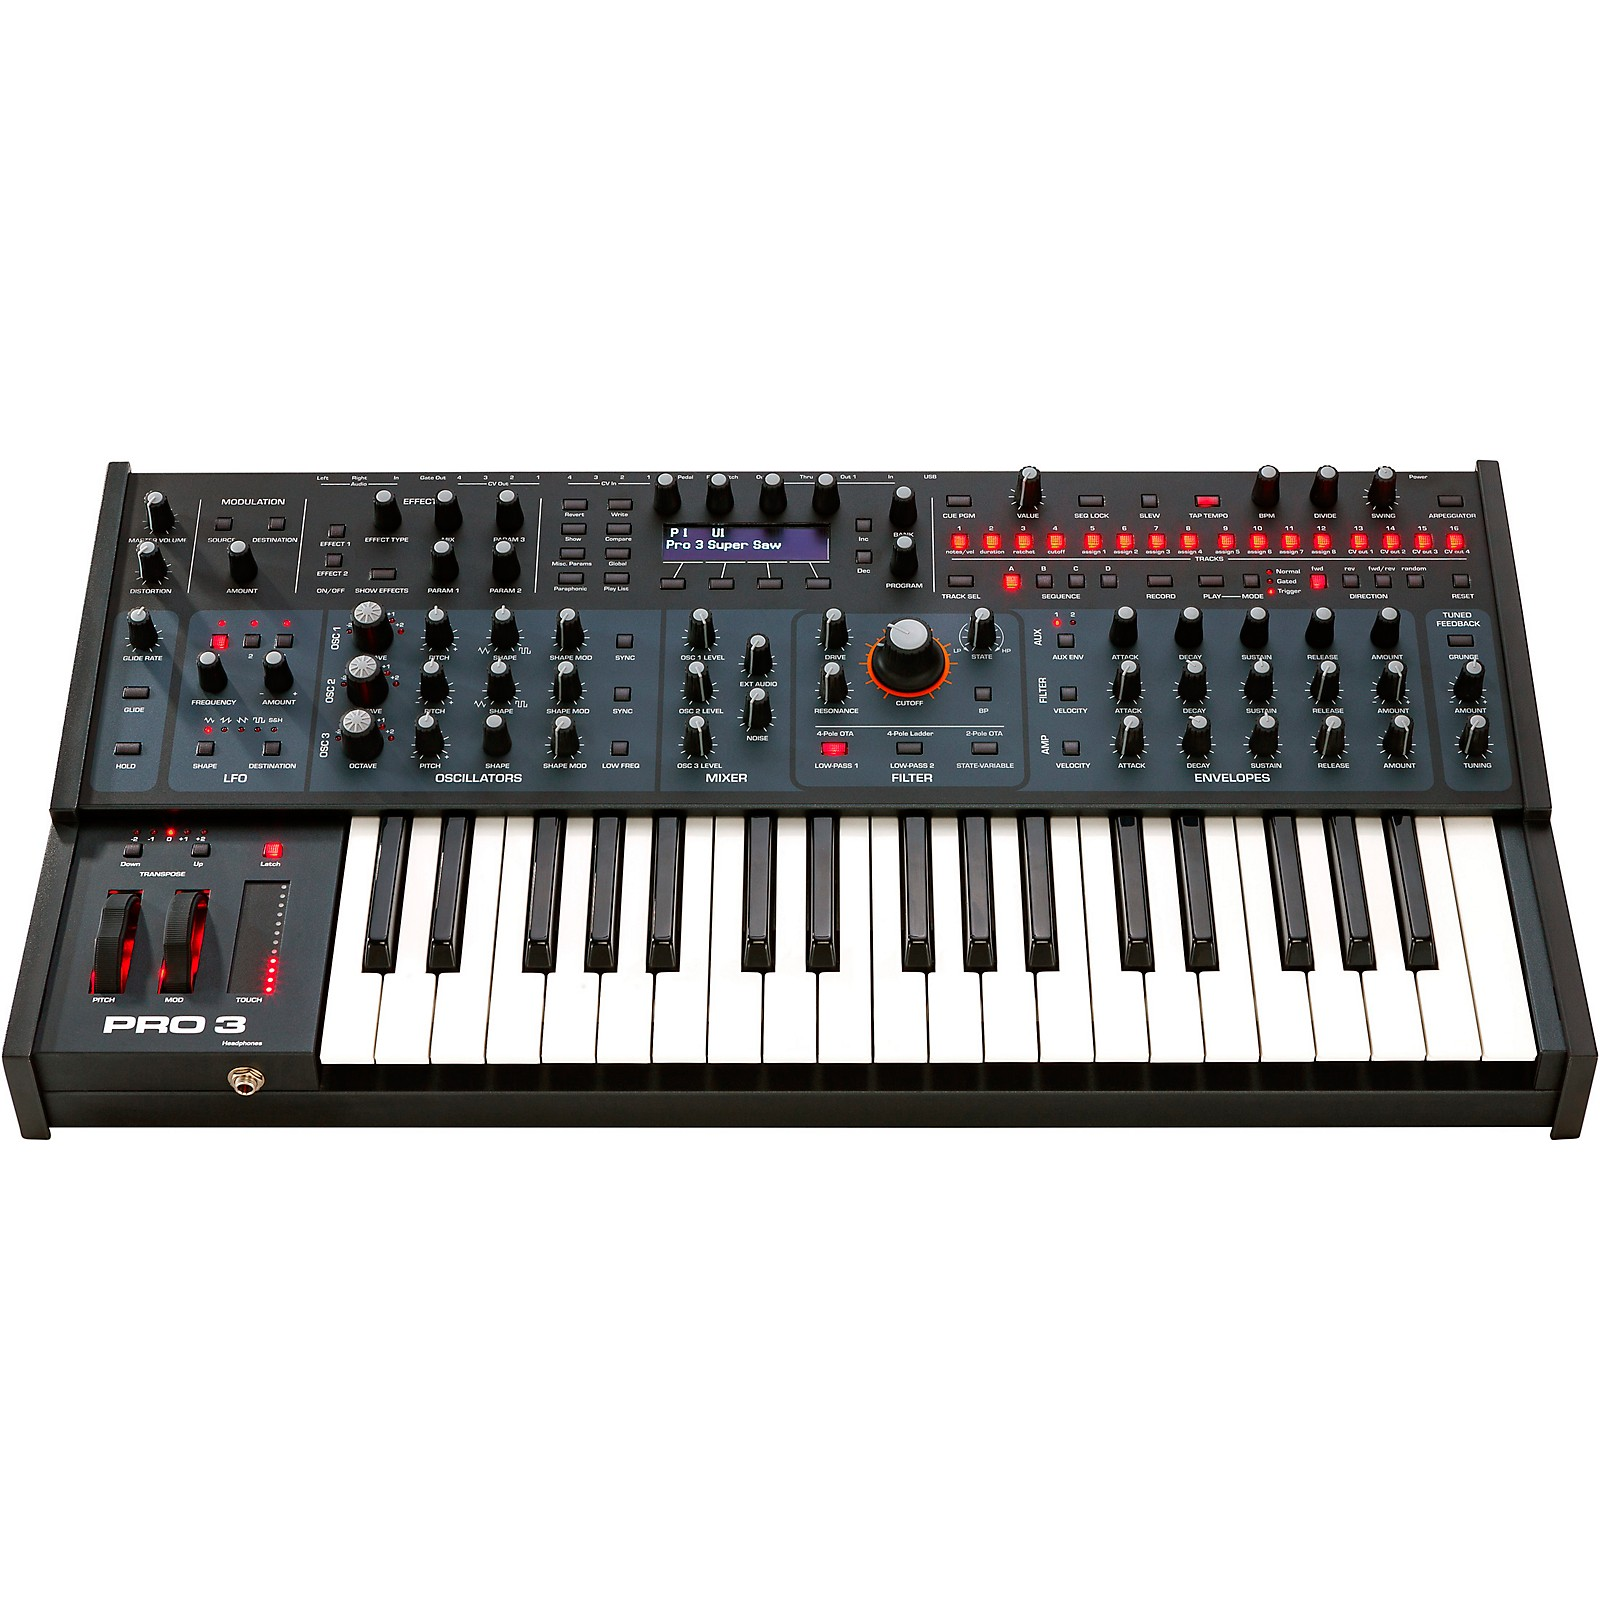 Sequential Pro 3 Multi-Filter Mono Synthesizer